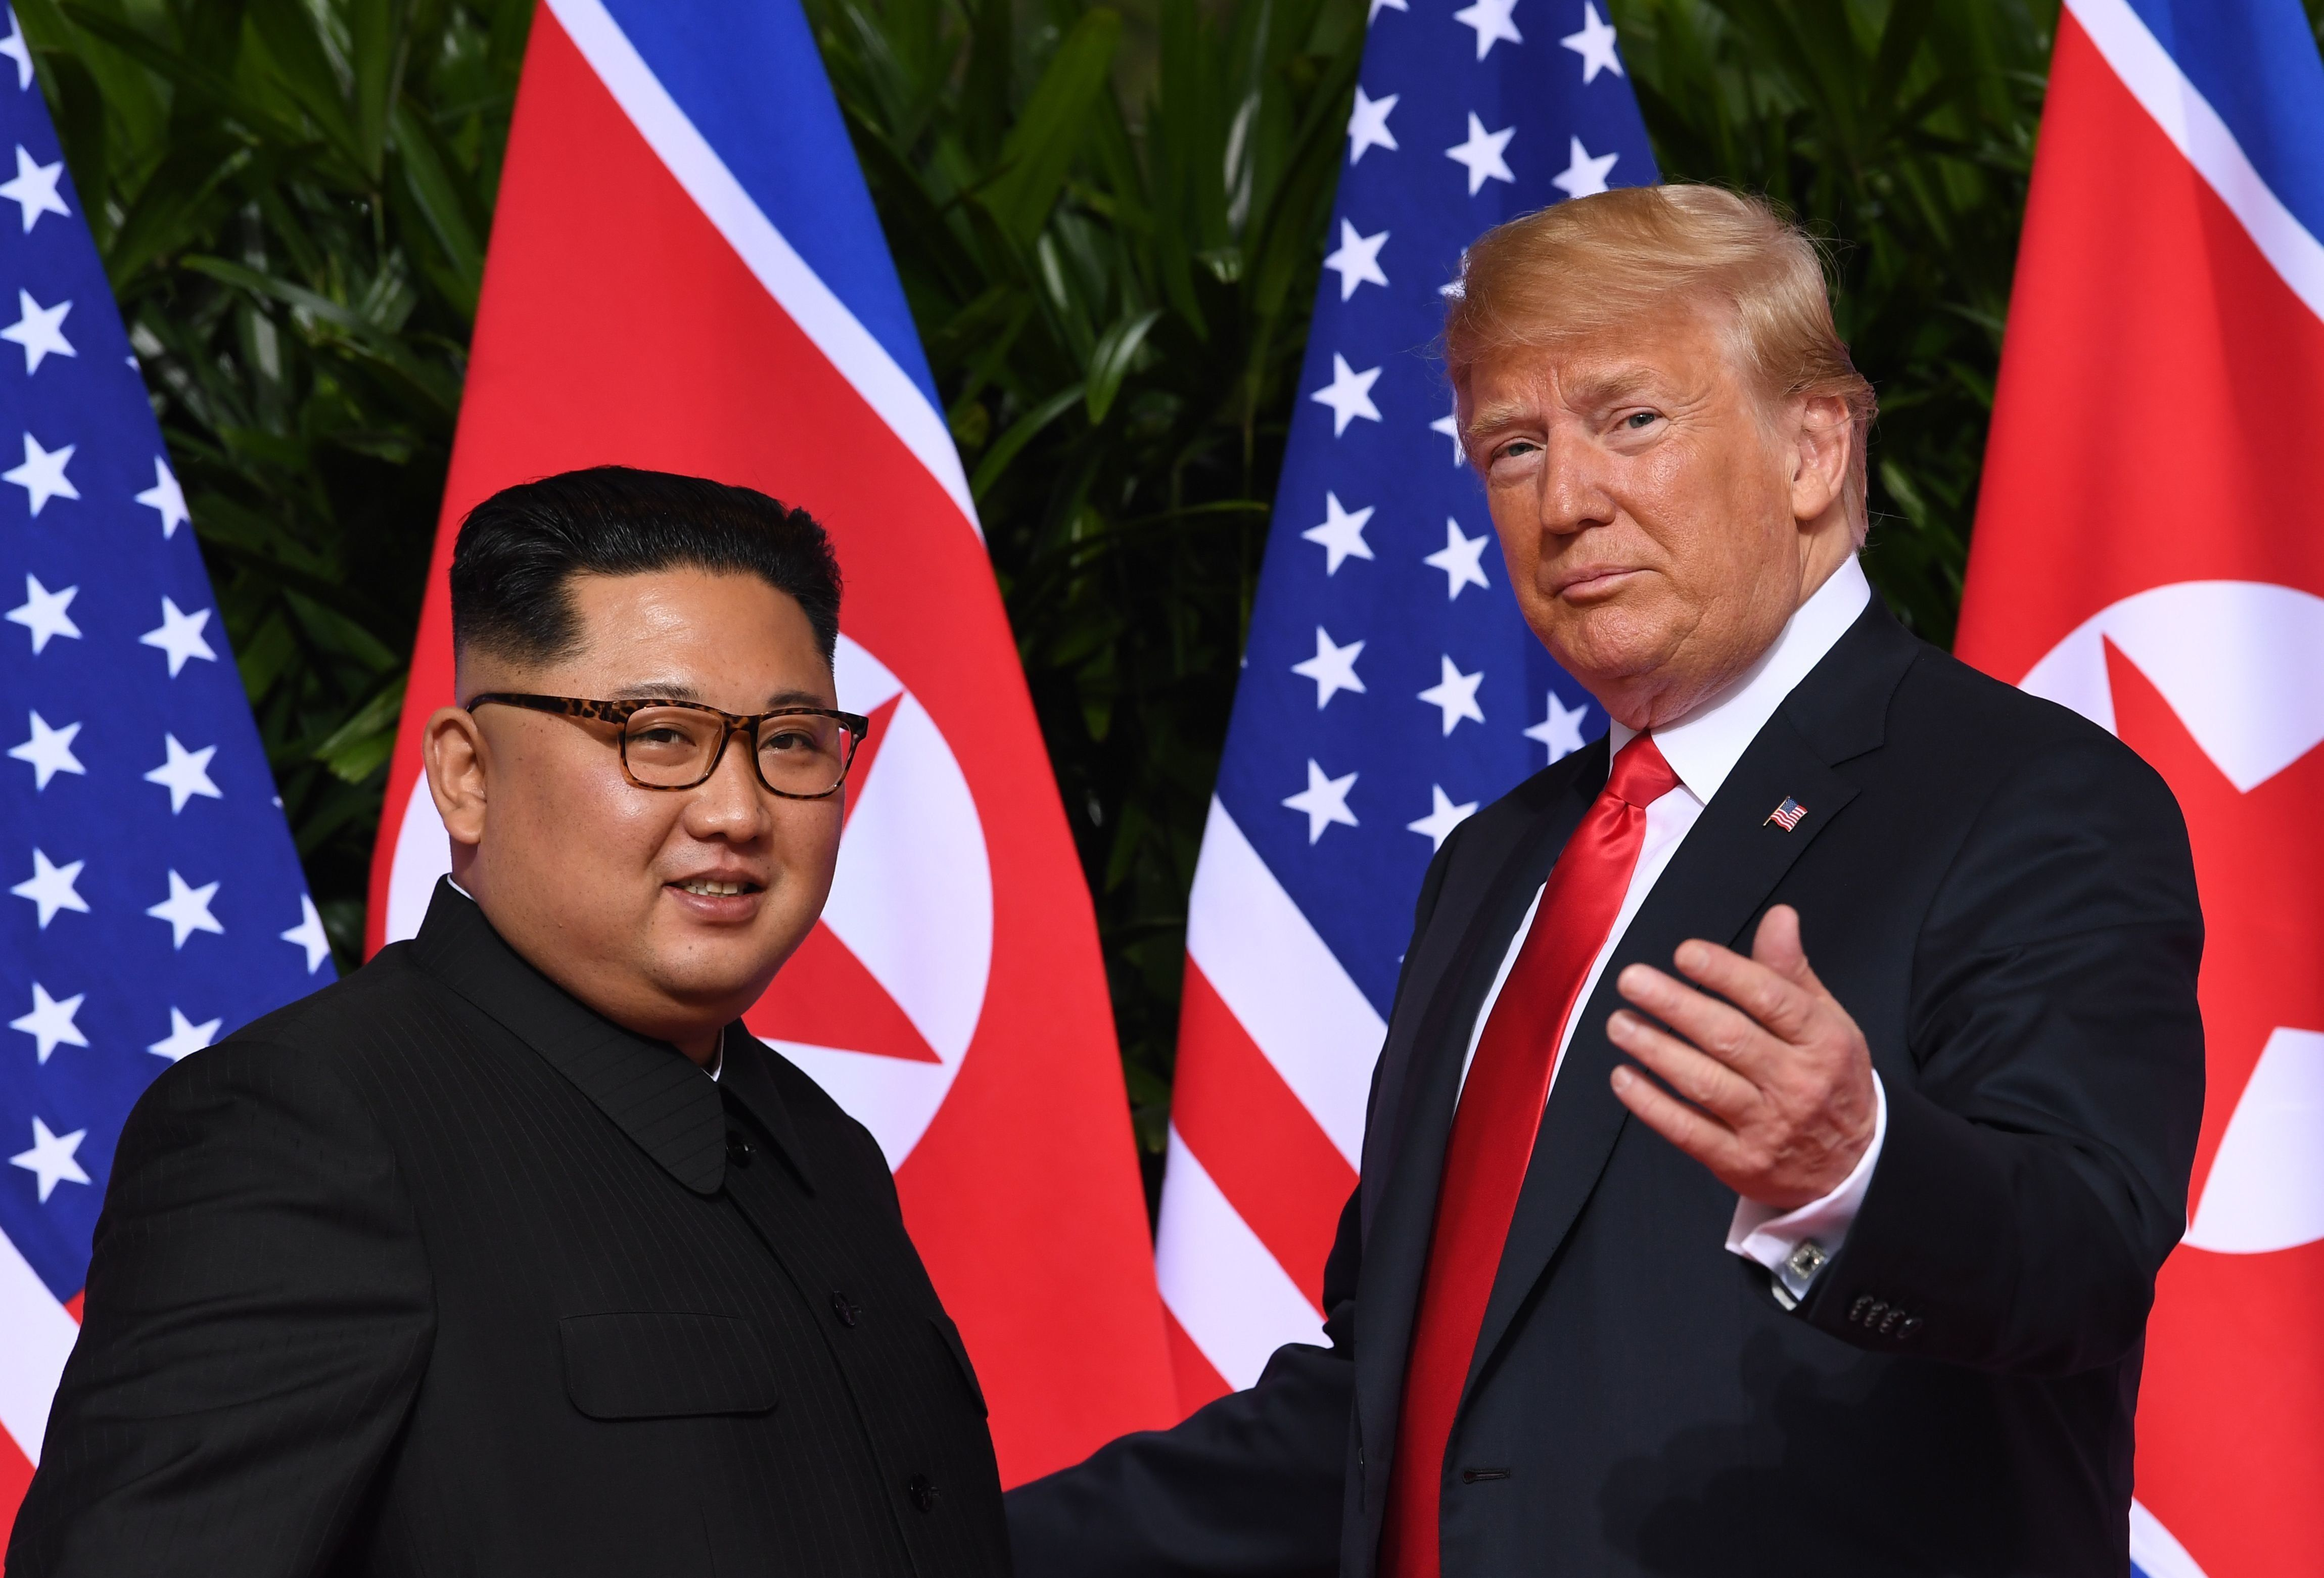 North Korea's leader Kim Jong Un and U.S. President Donald Trump at the start of their summit in Singapore